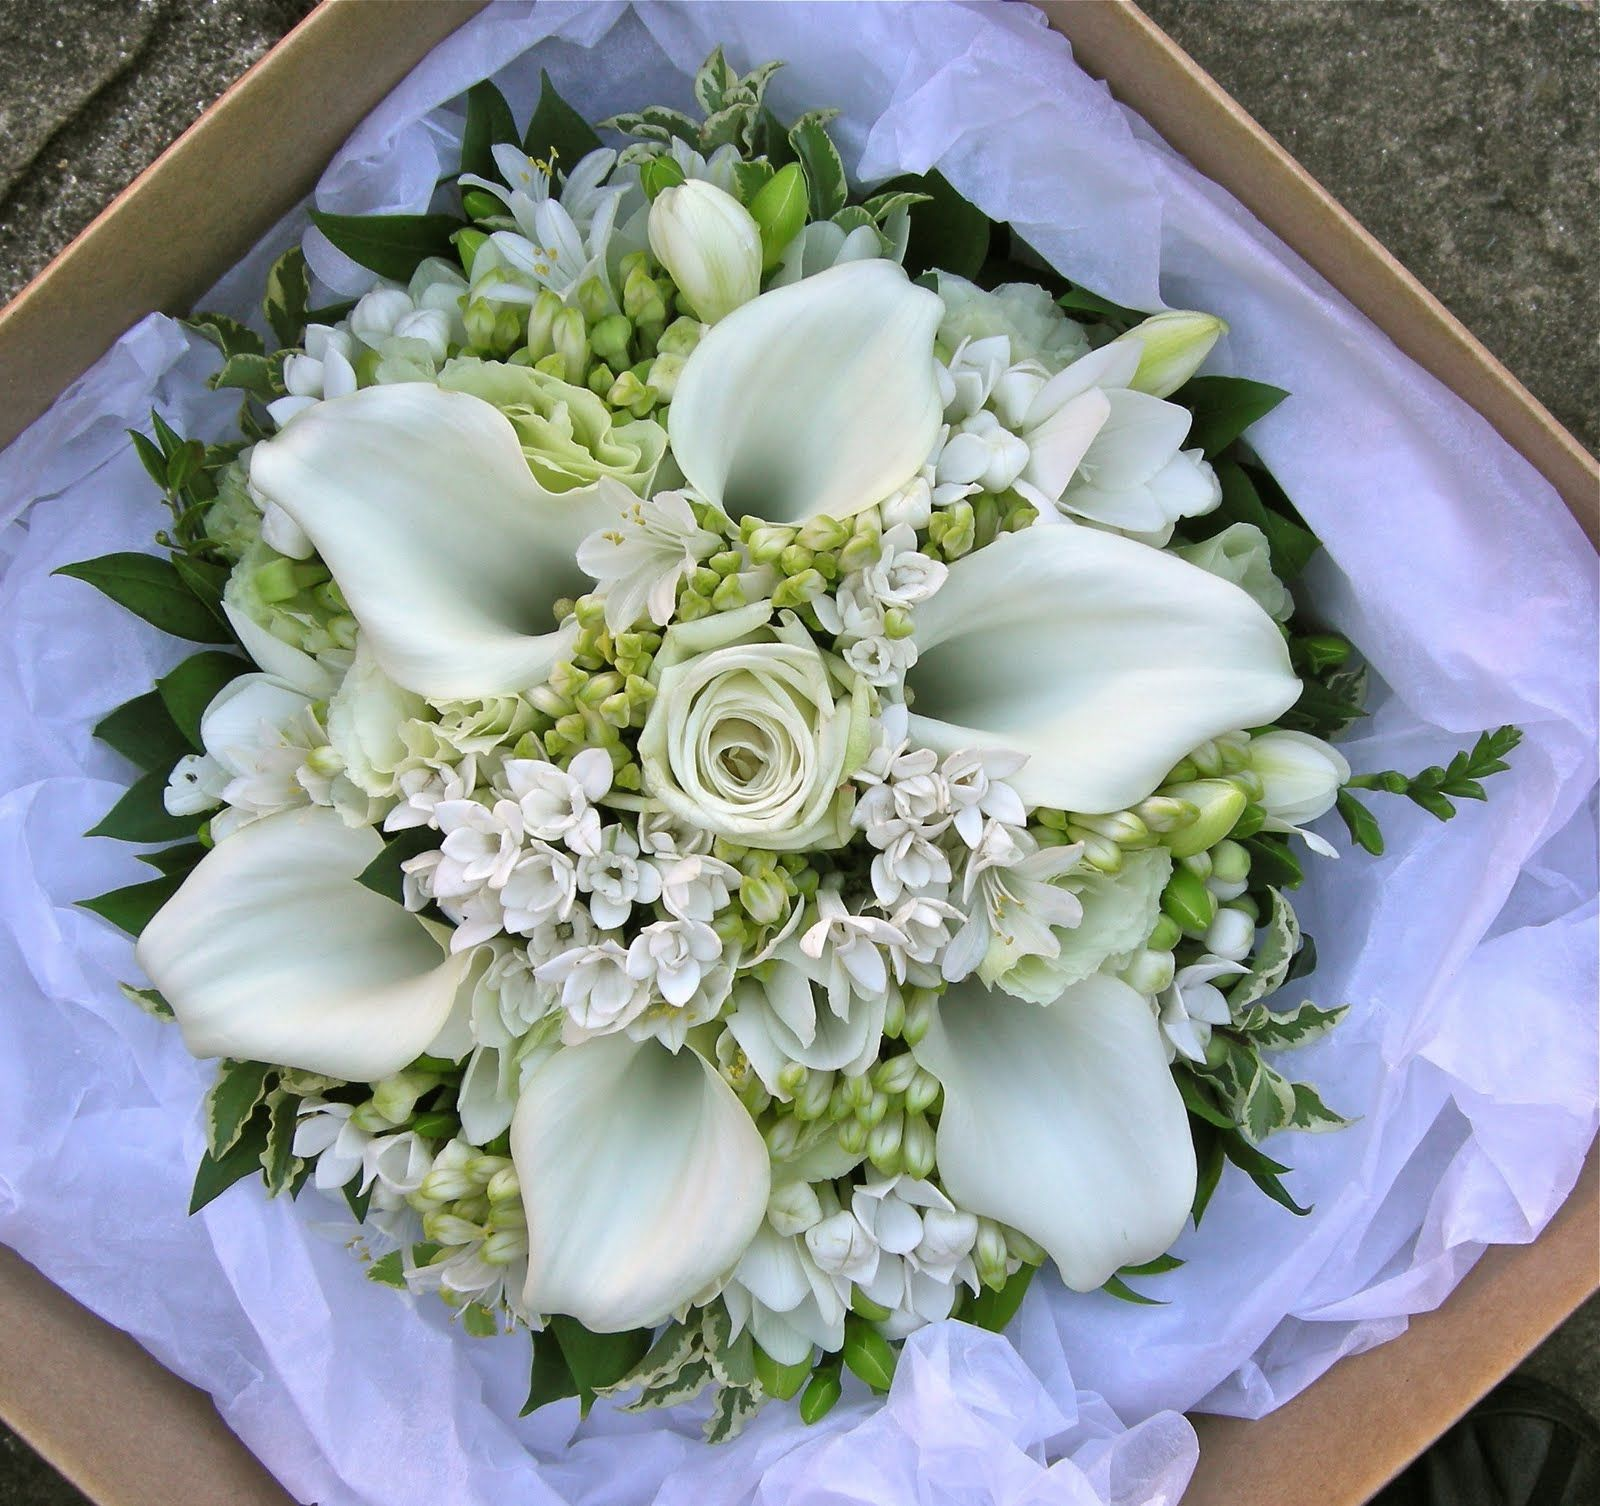 Alison's pale green and white wedding flowers, Potters